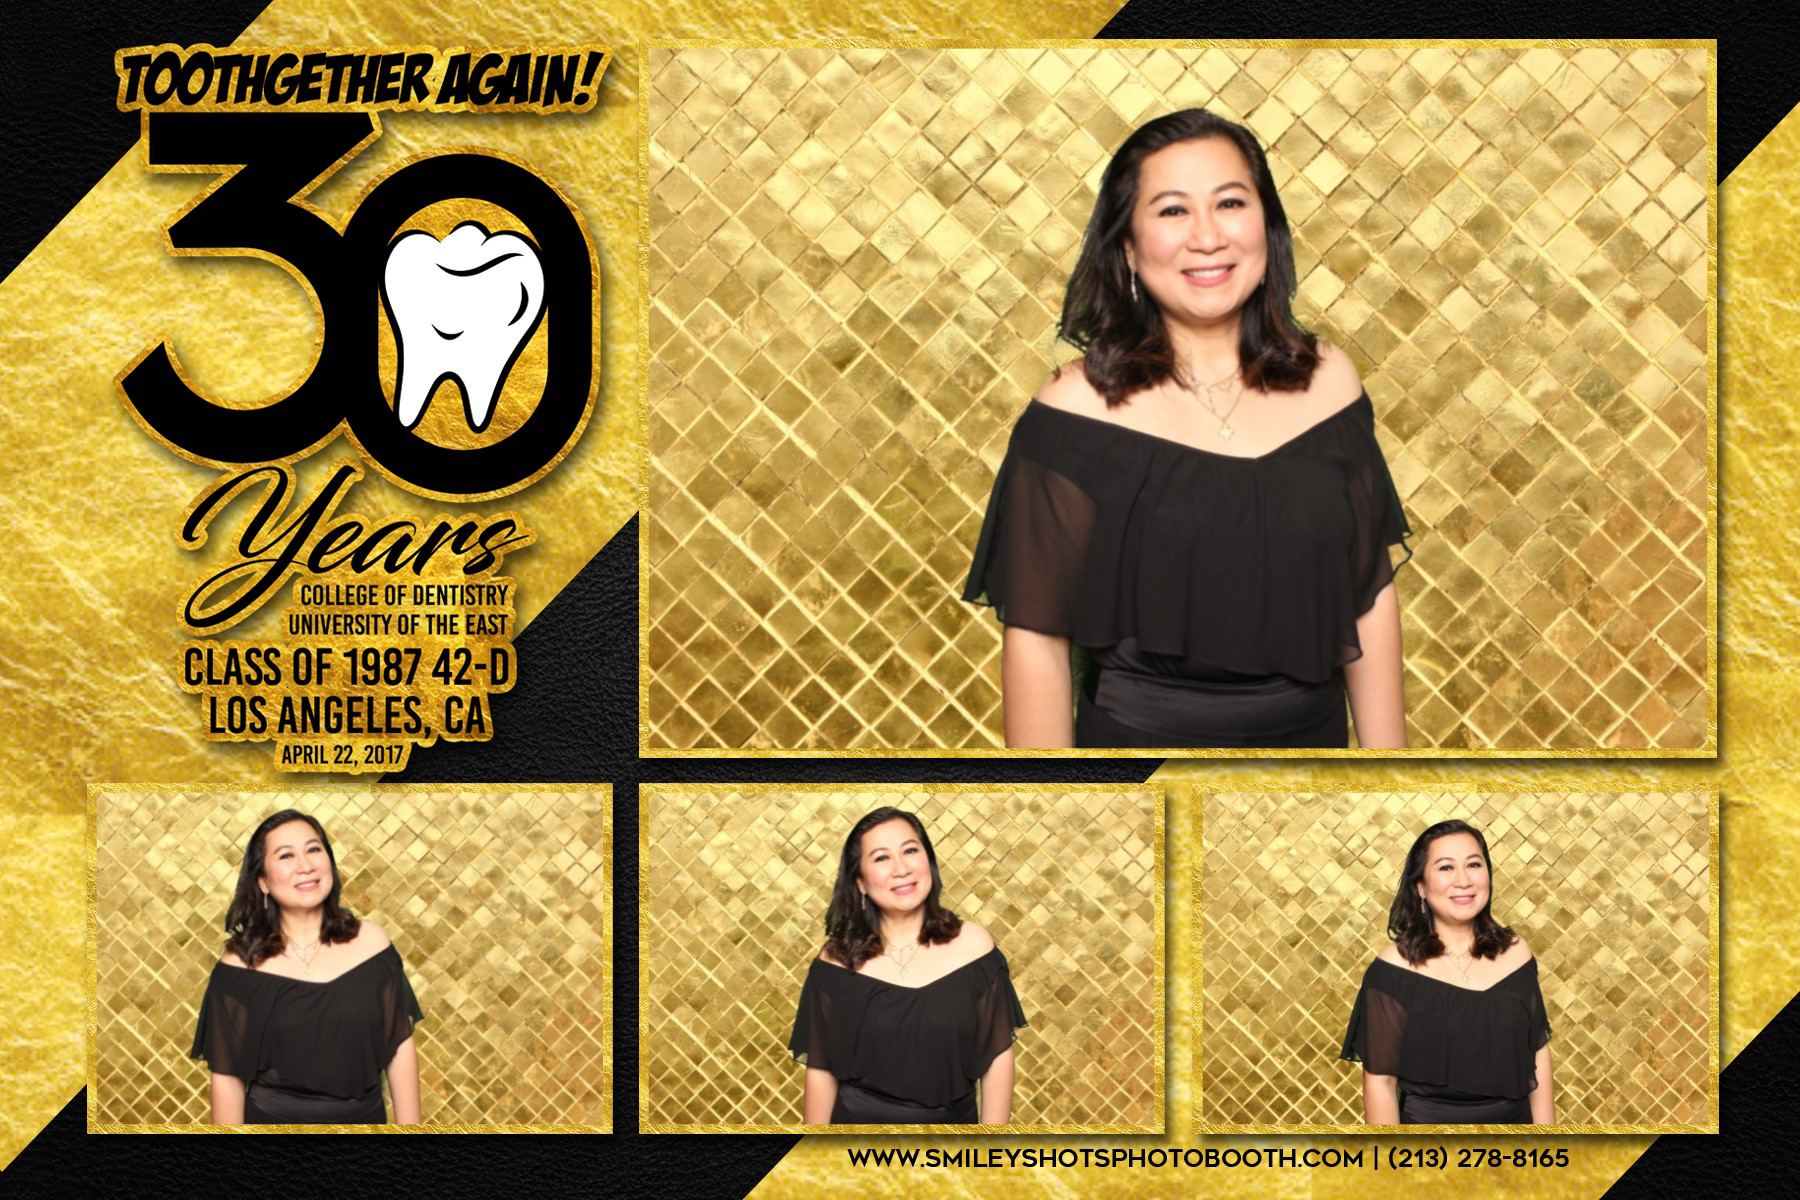 30th Years Dental UE Smiley Shots Photo Booth Photobooth (7).png